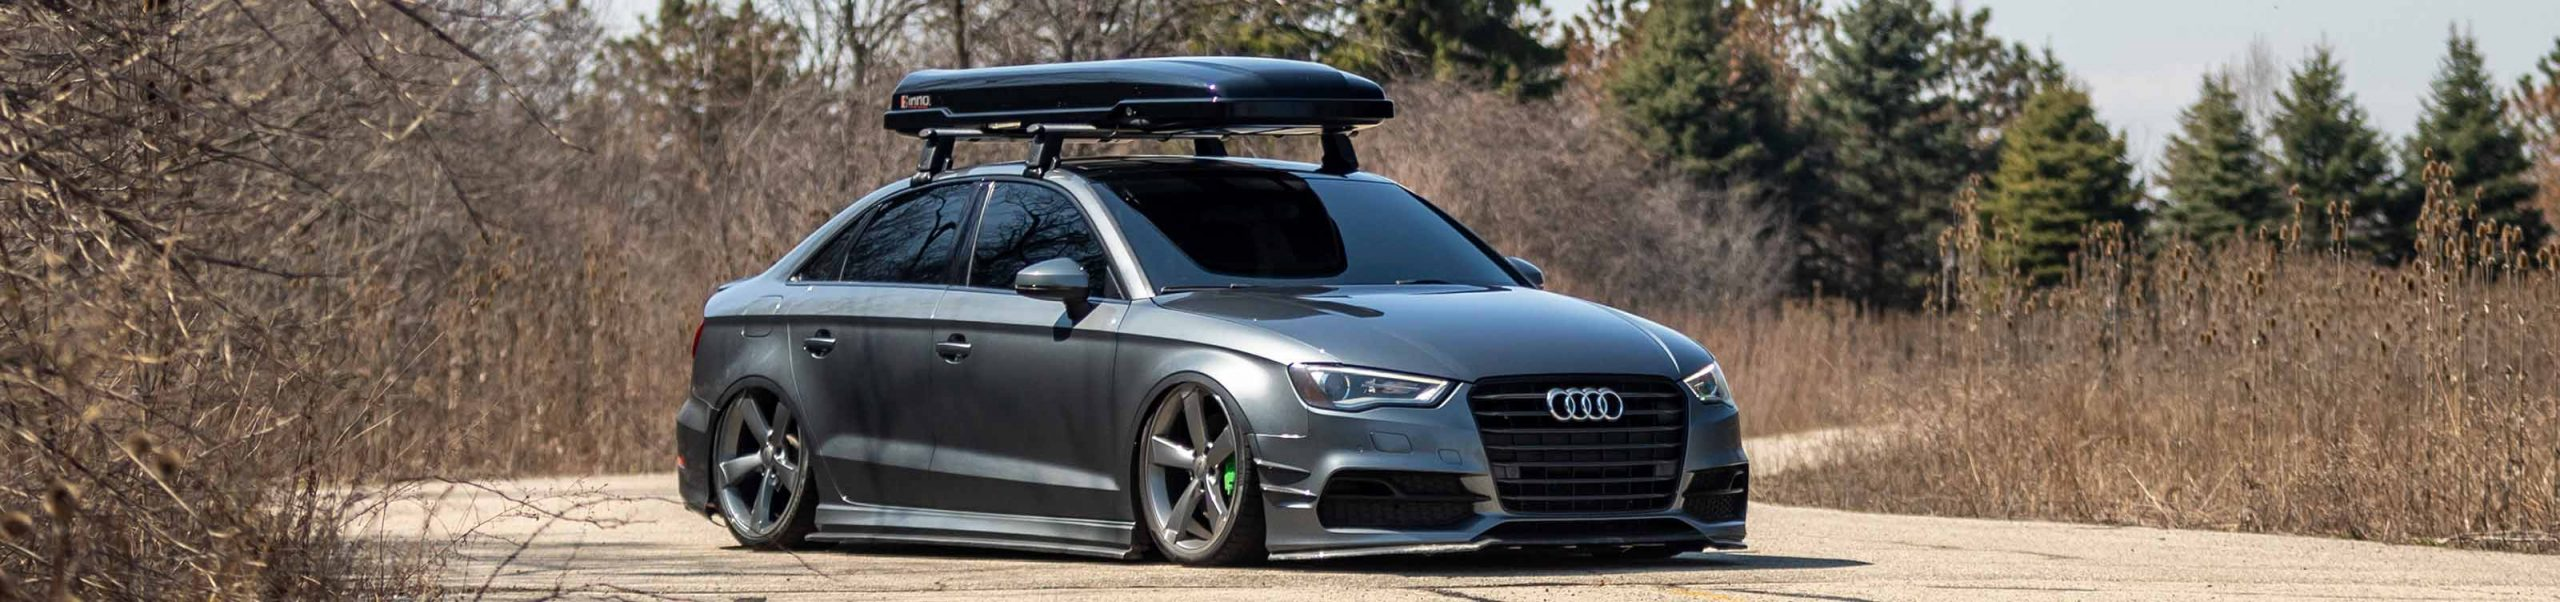 Audi Tuning & Aftermarket Performance Parts